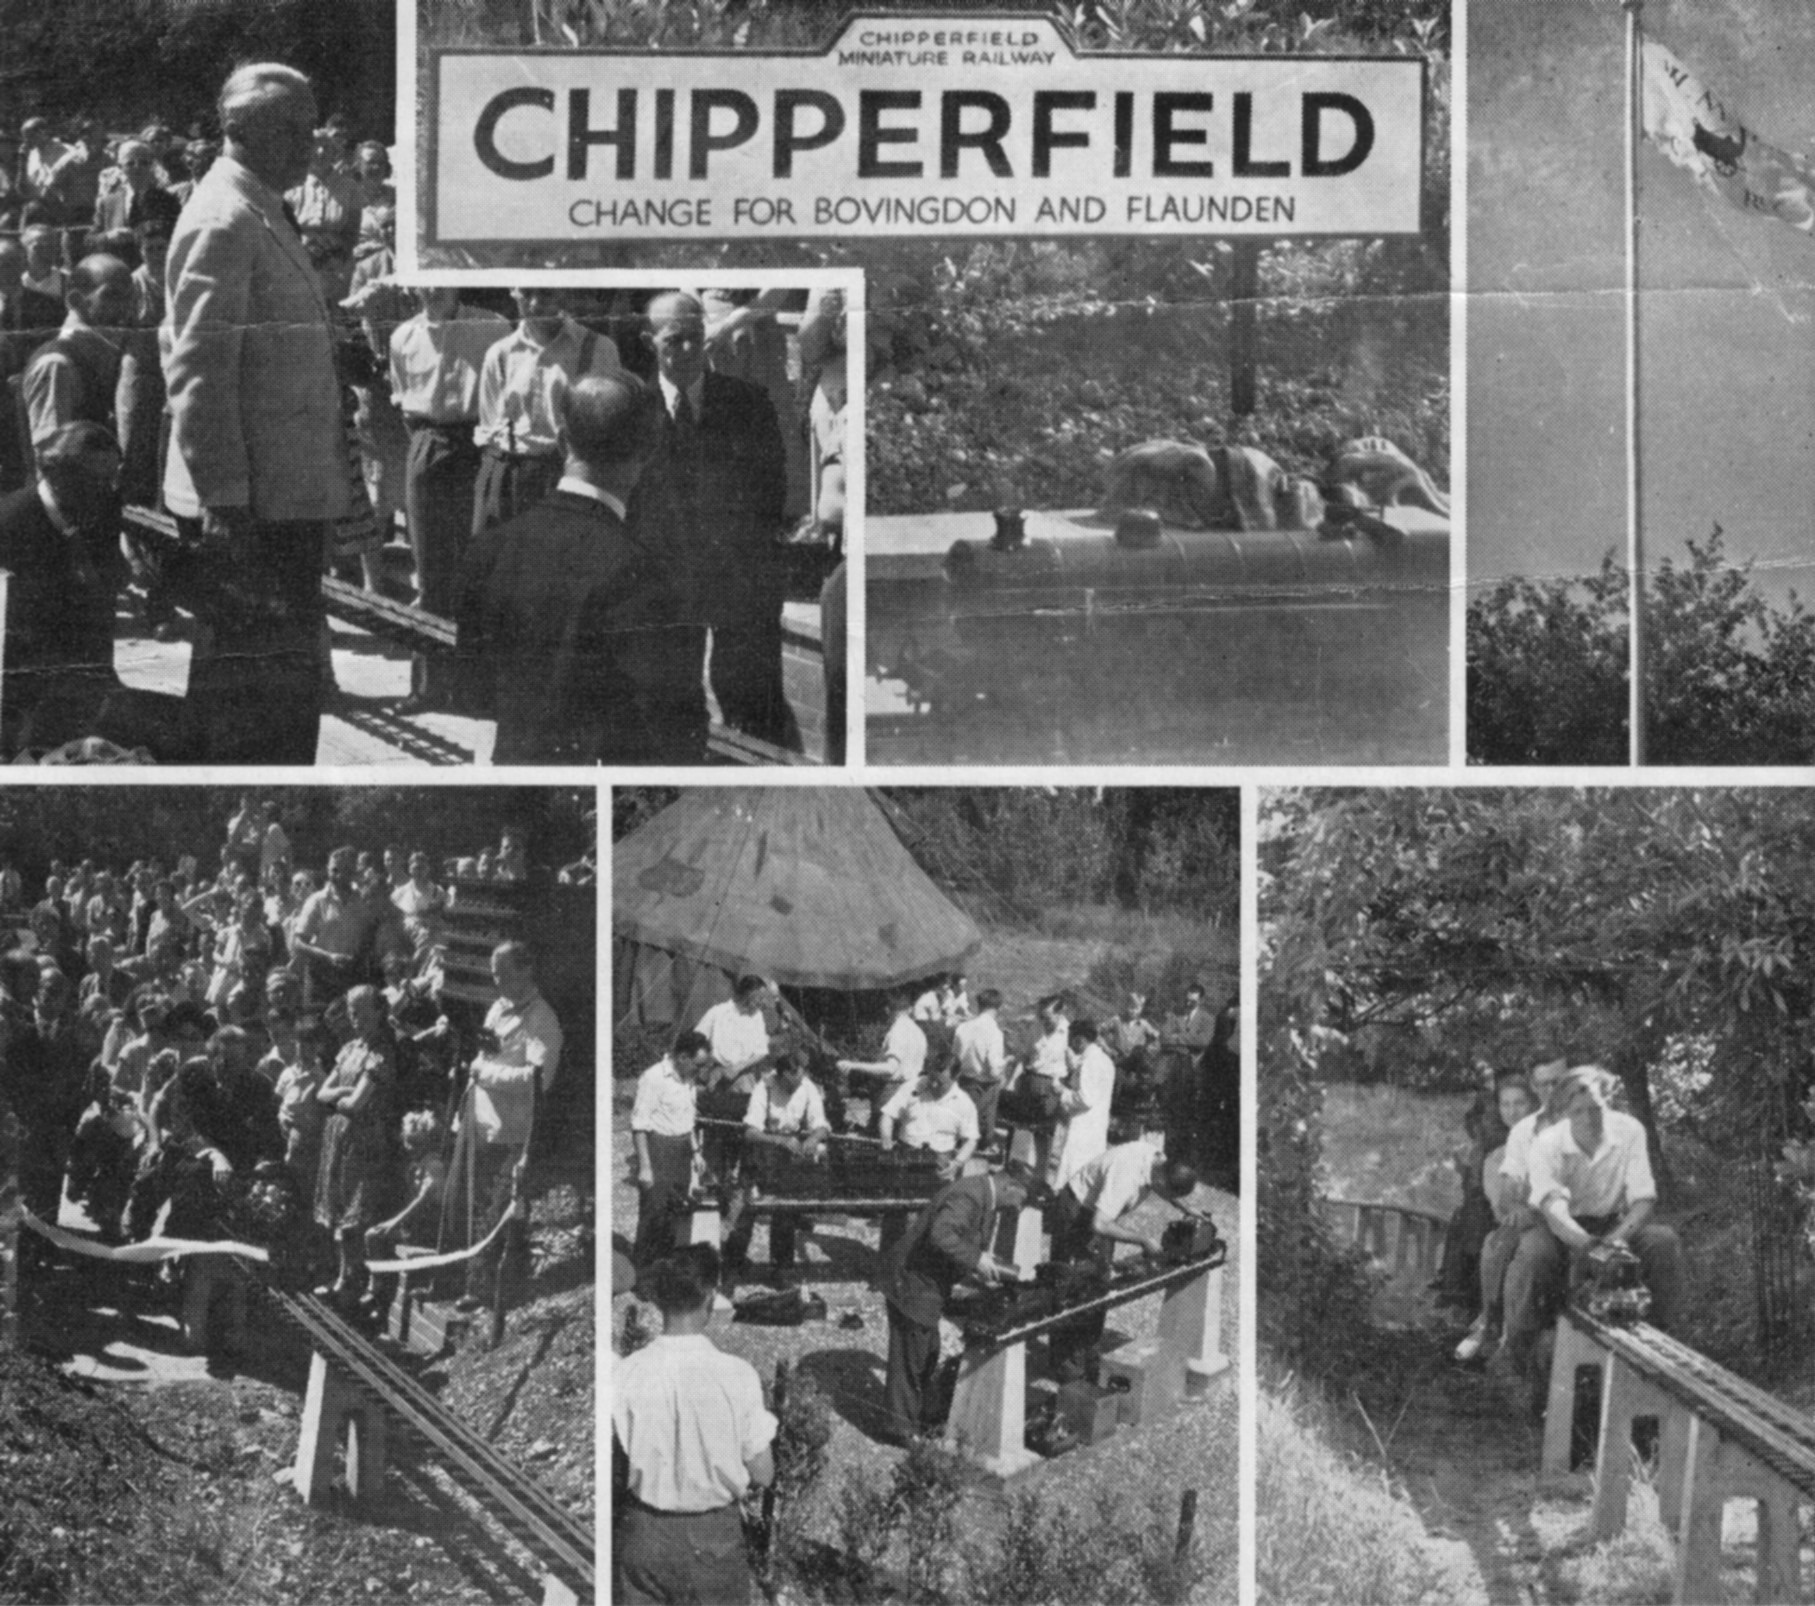 Chipperfield track opening_Mechanics mag 23 July 1949